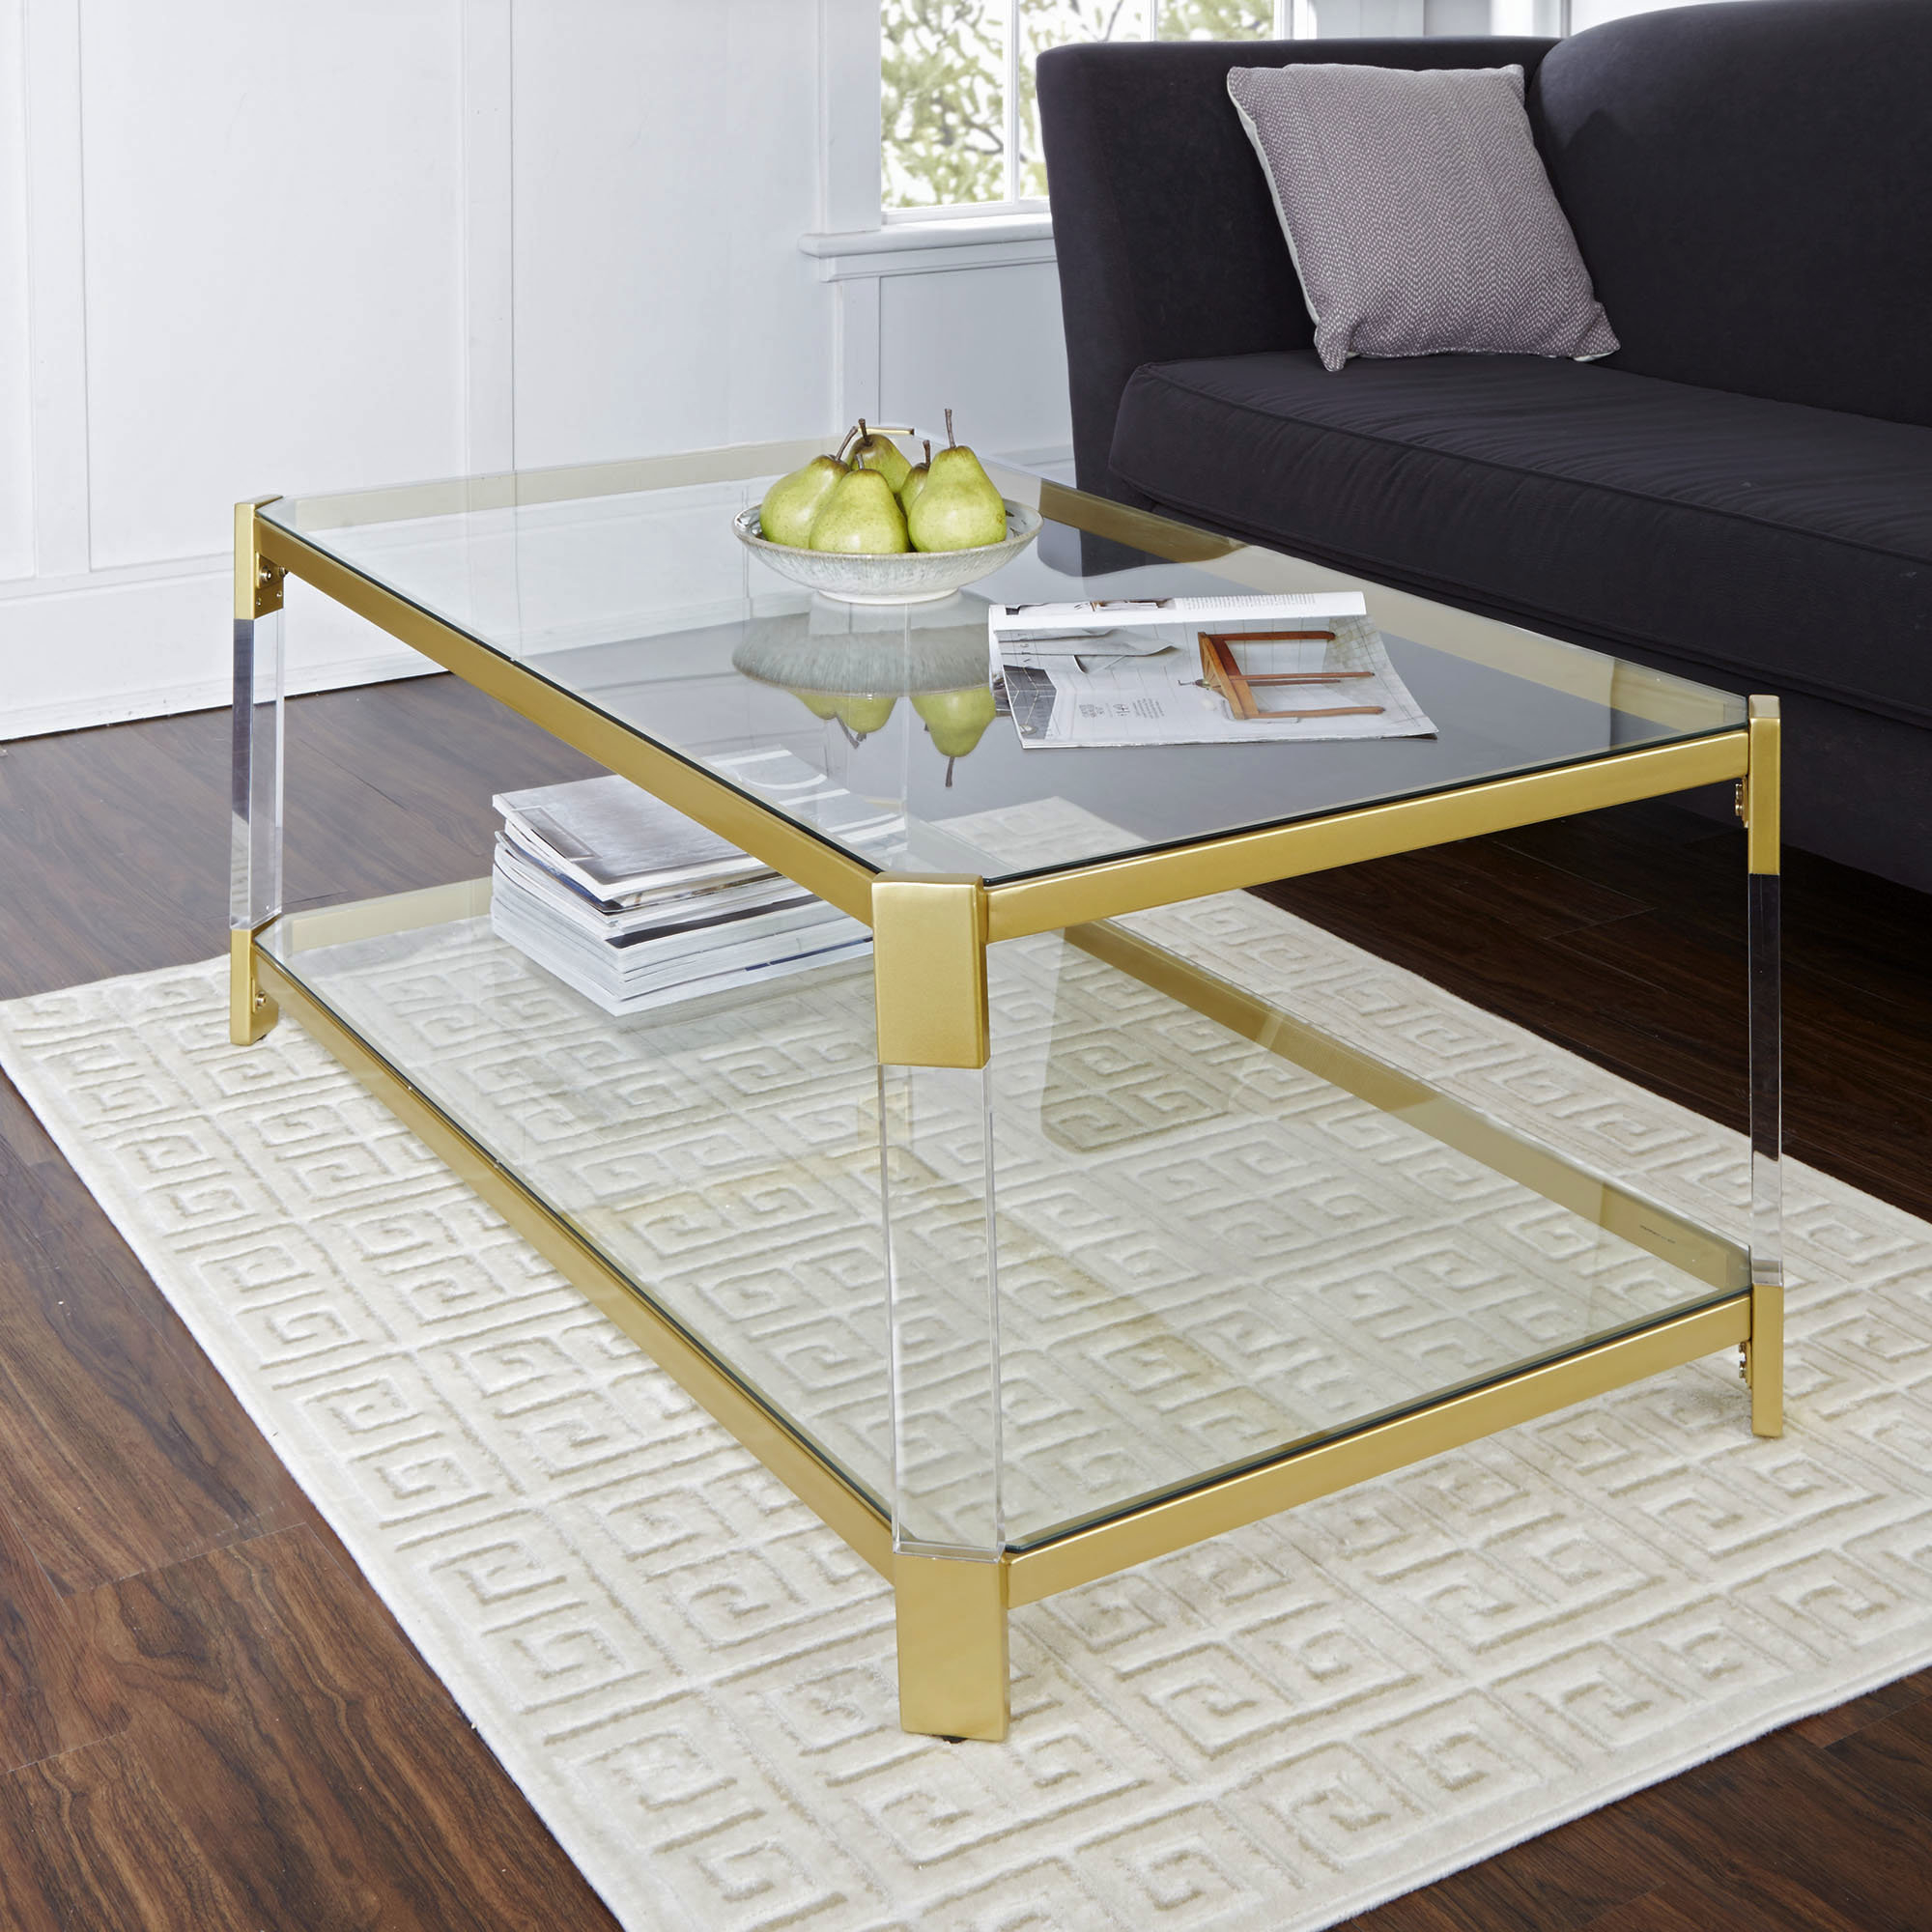 Everly Quinn Hythe Clear Glass Coffee Table Reviews Wayfair within measurements 2000 X 2000